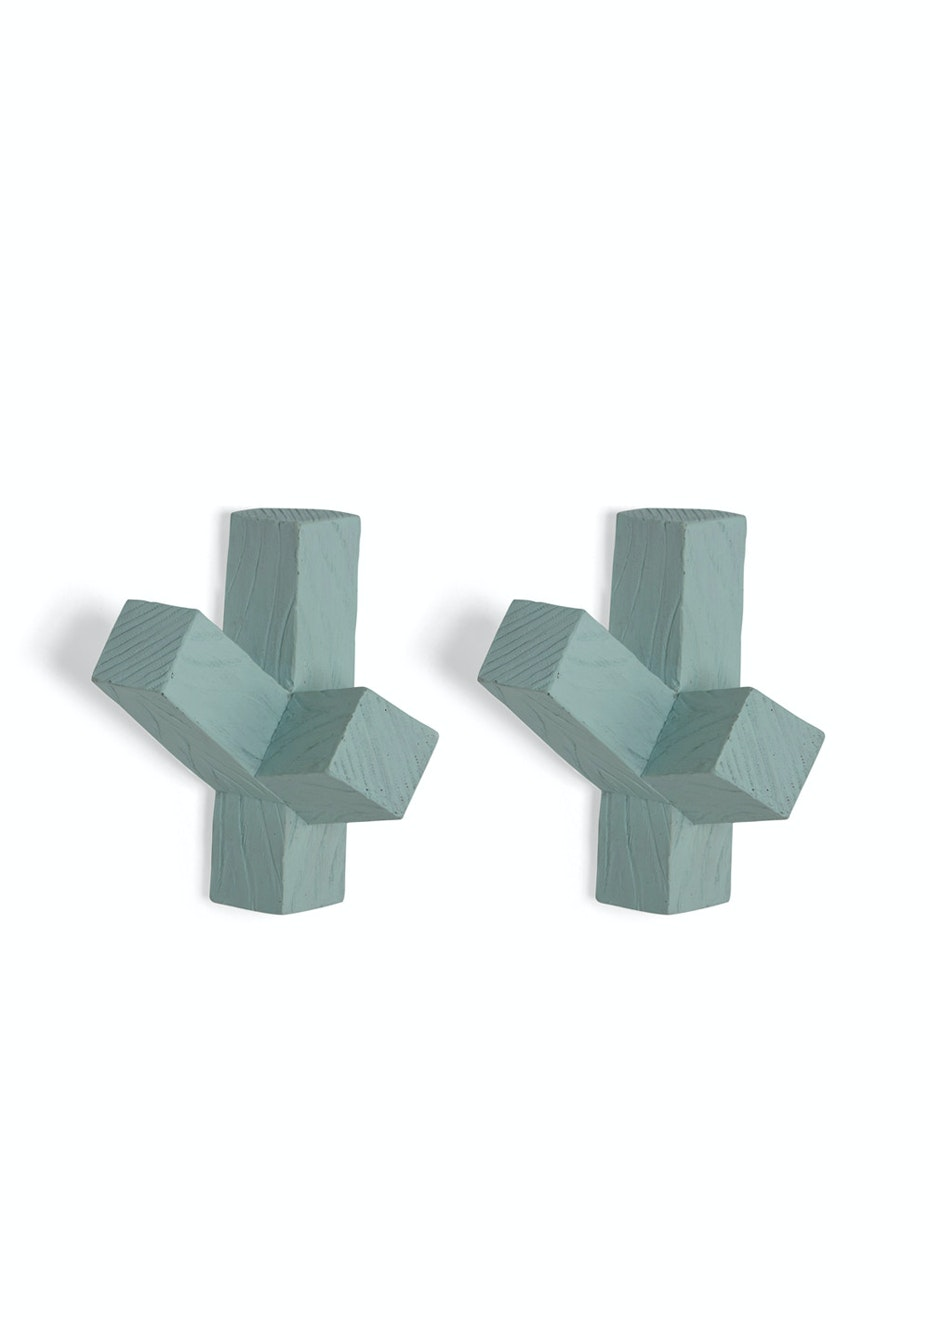 Me & My Trend - Set of 2 Mint Cactus Wall Hooks